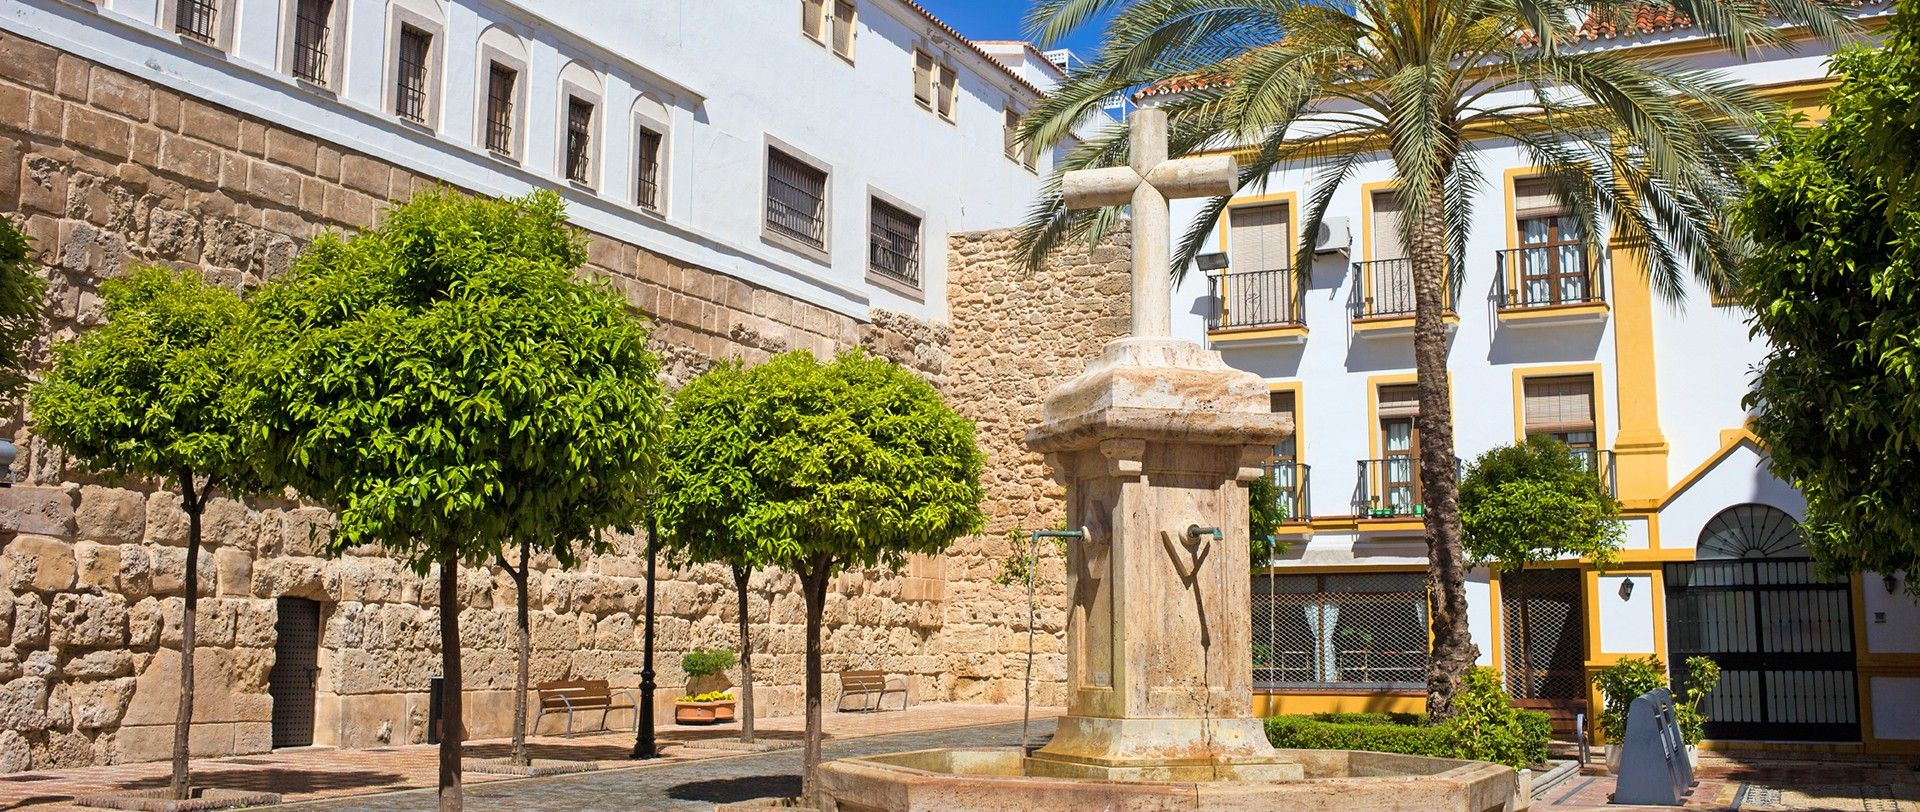 Marbella Historic City Centre